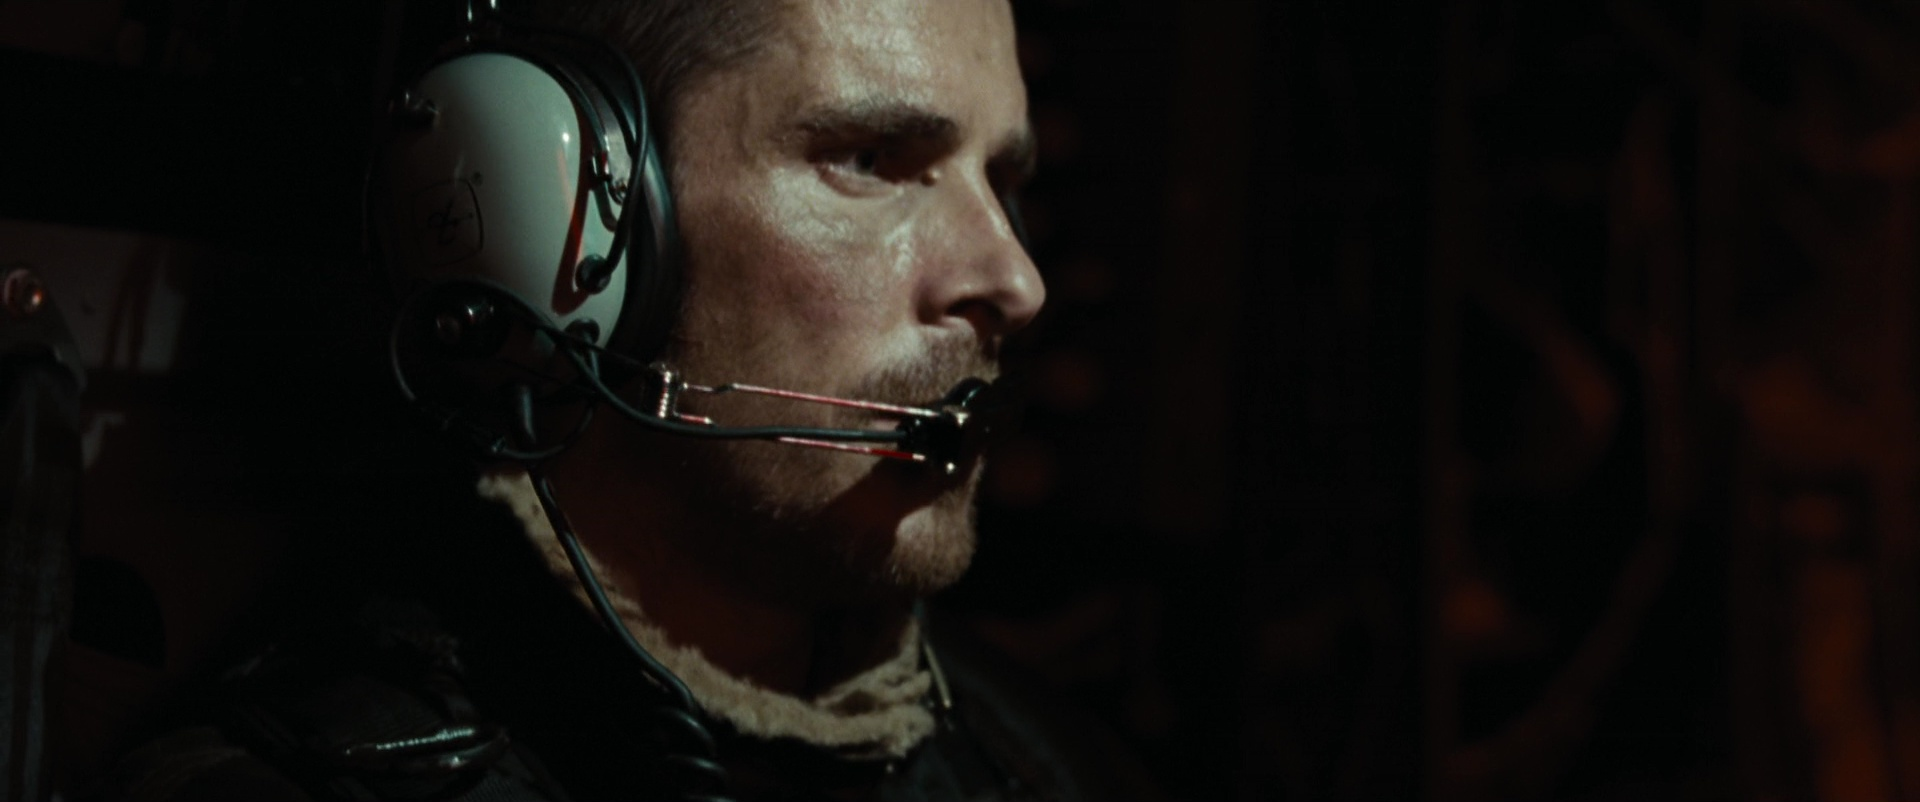 David Clark Headsets Used By Christian Bale John Connor